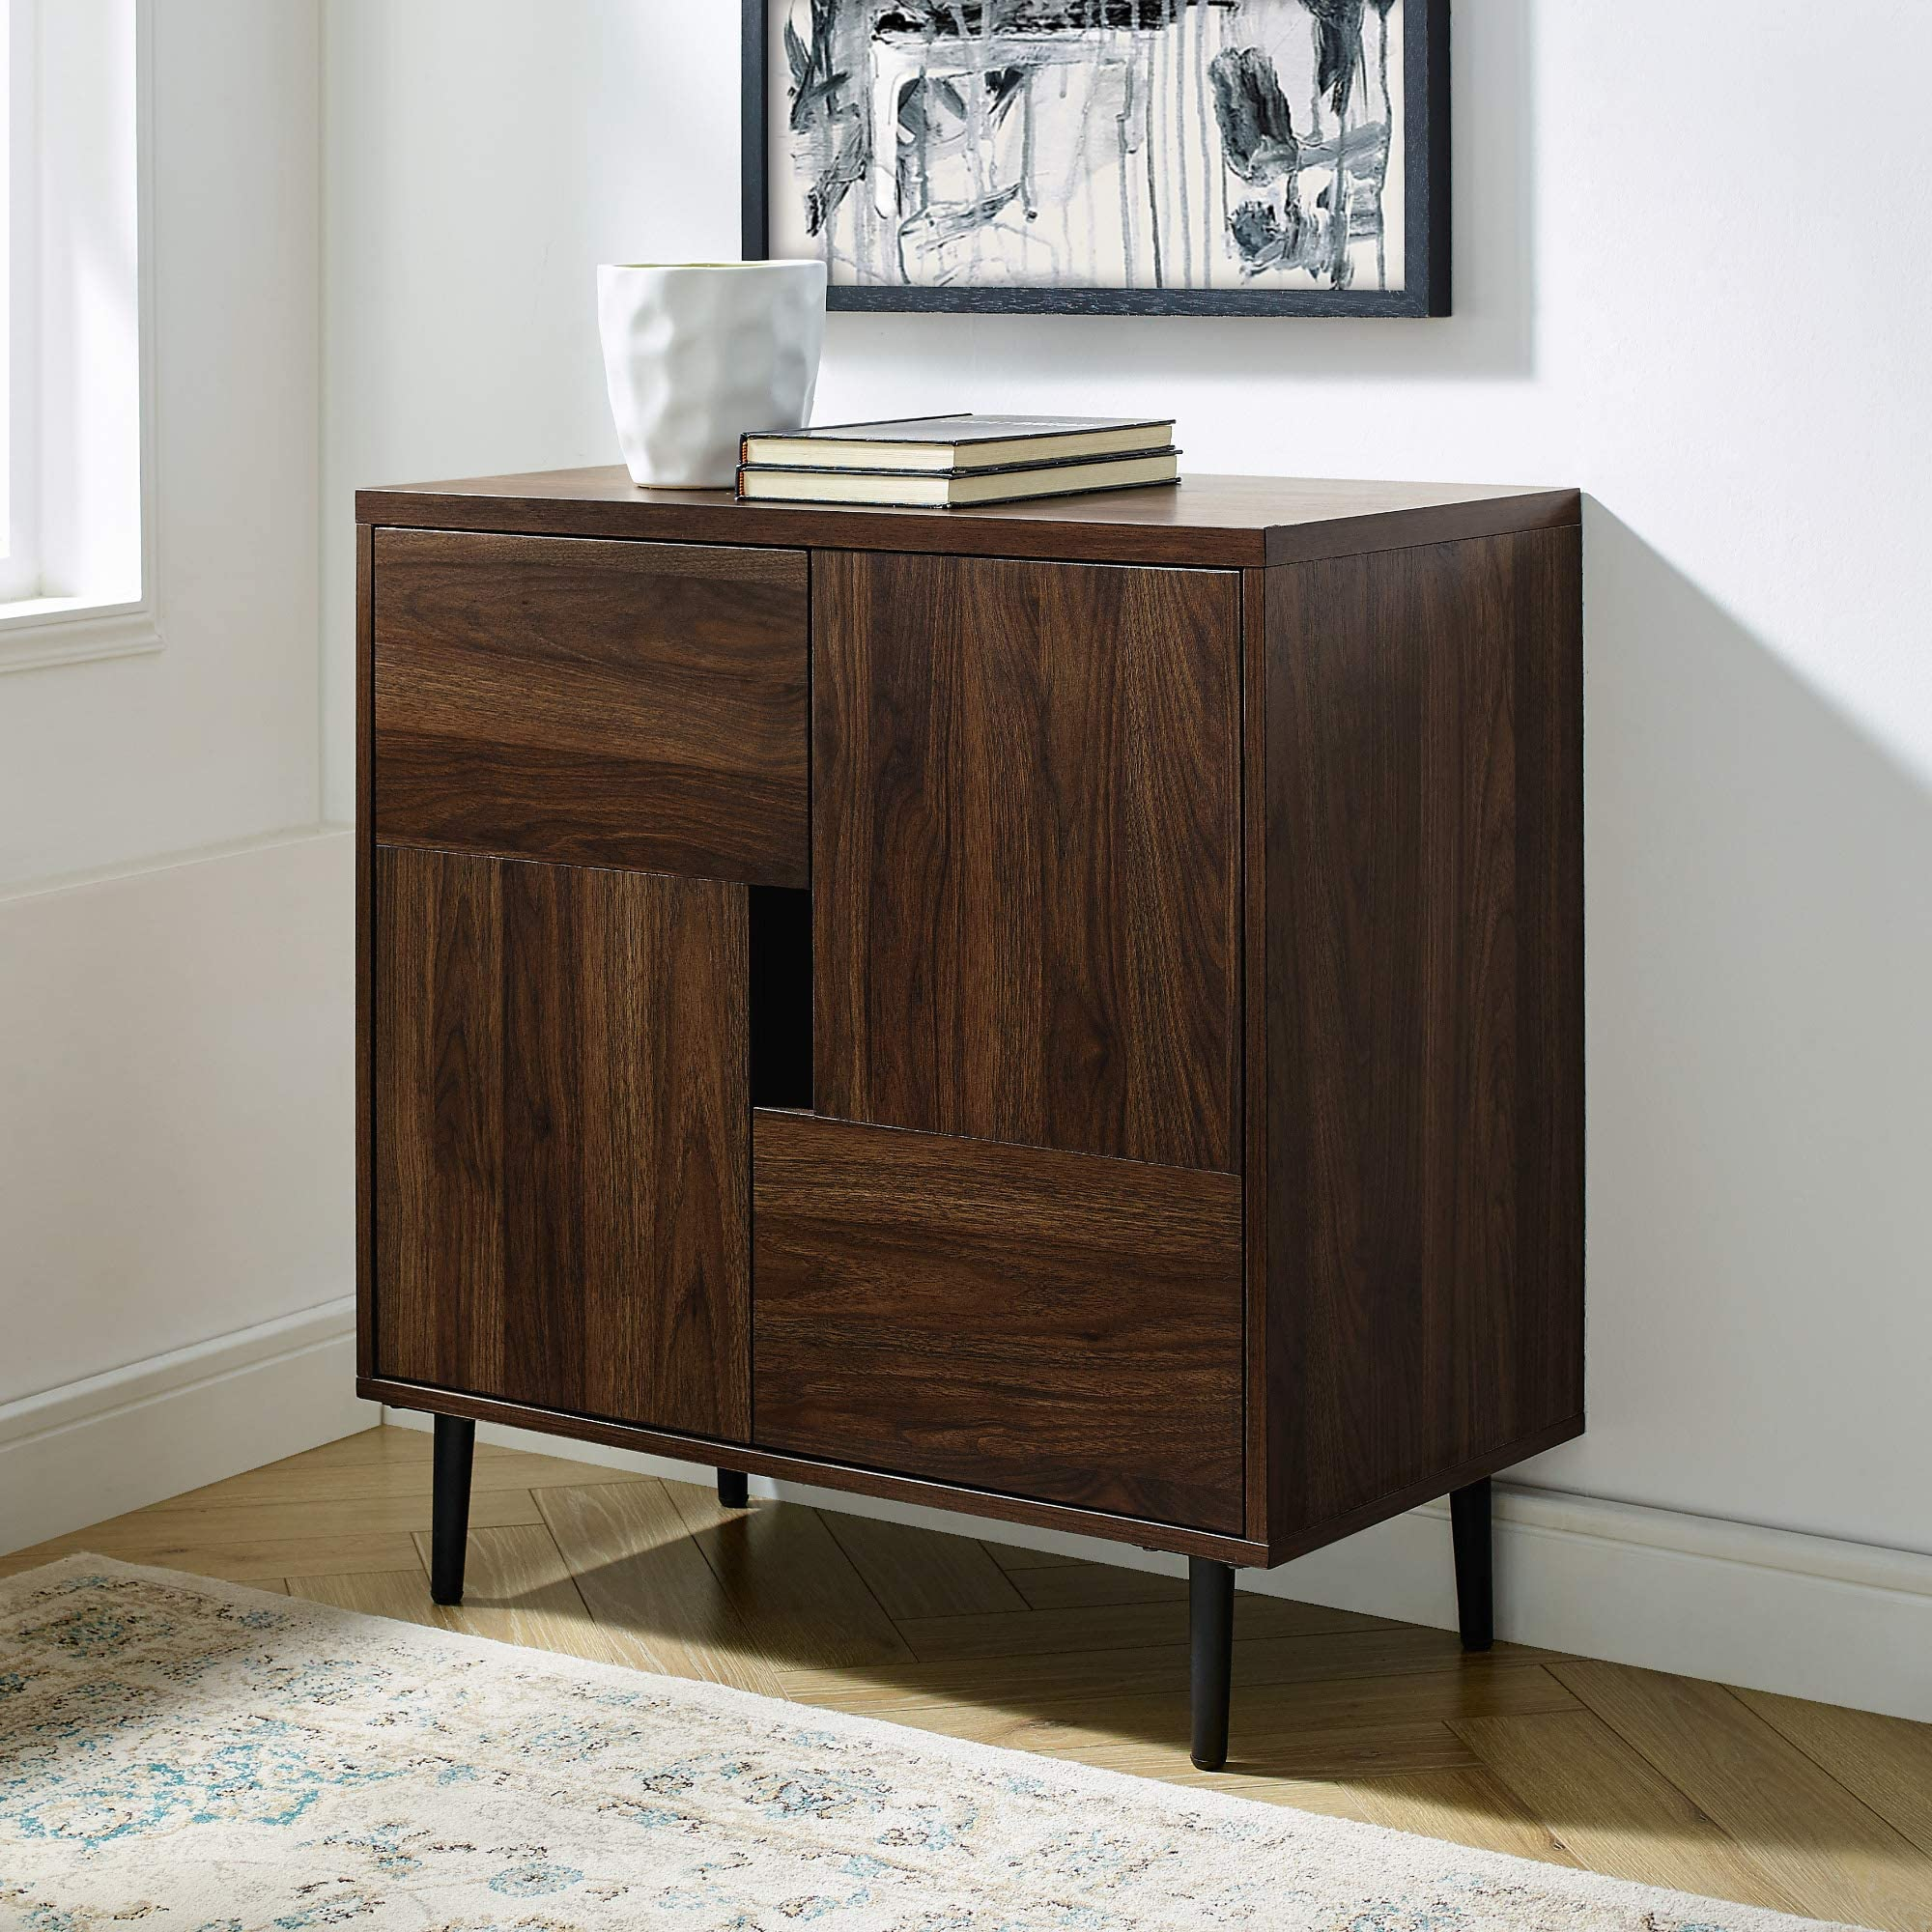 Amazon Com Walker Edison Modern Color Pop Buffet Accent Entryway Bar Cabinet Storage Entry Table Living Dining Room 30 Inch Walnut Brown Navy Interior Furniture Decor